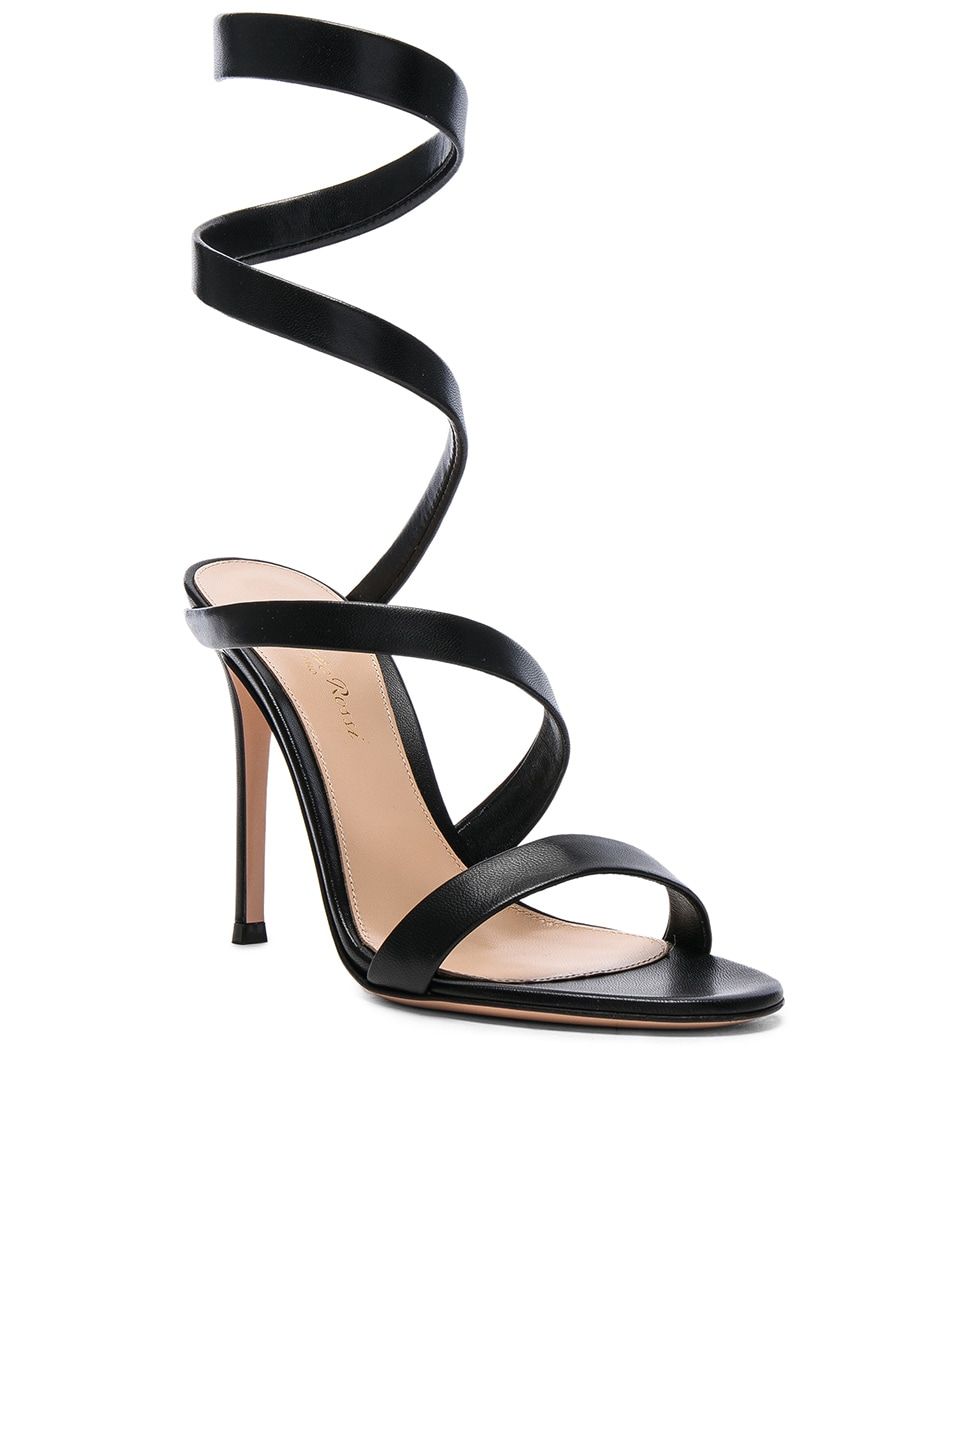 Image 2 of Gianvito Rossi Leather Opera Sandals in Black